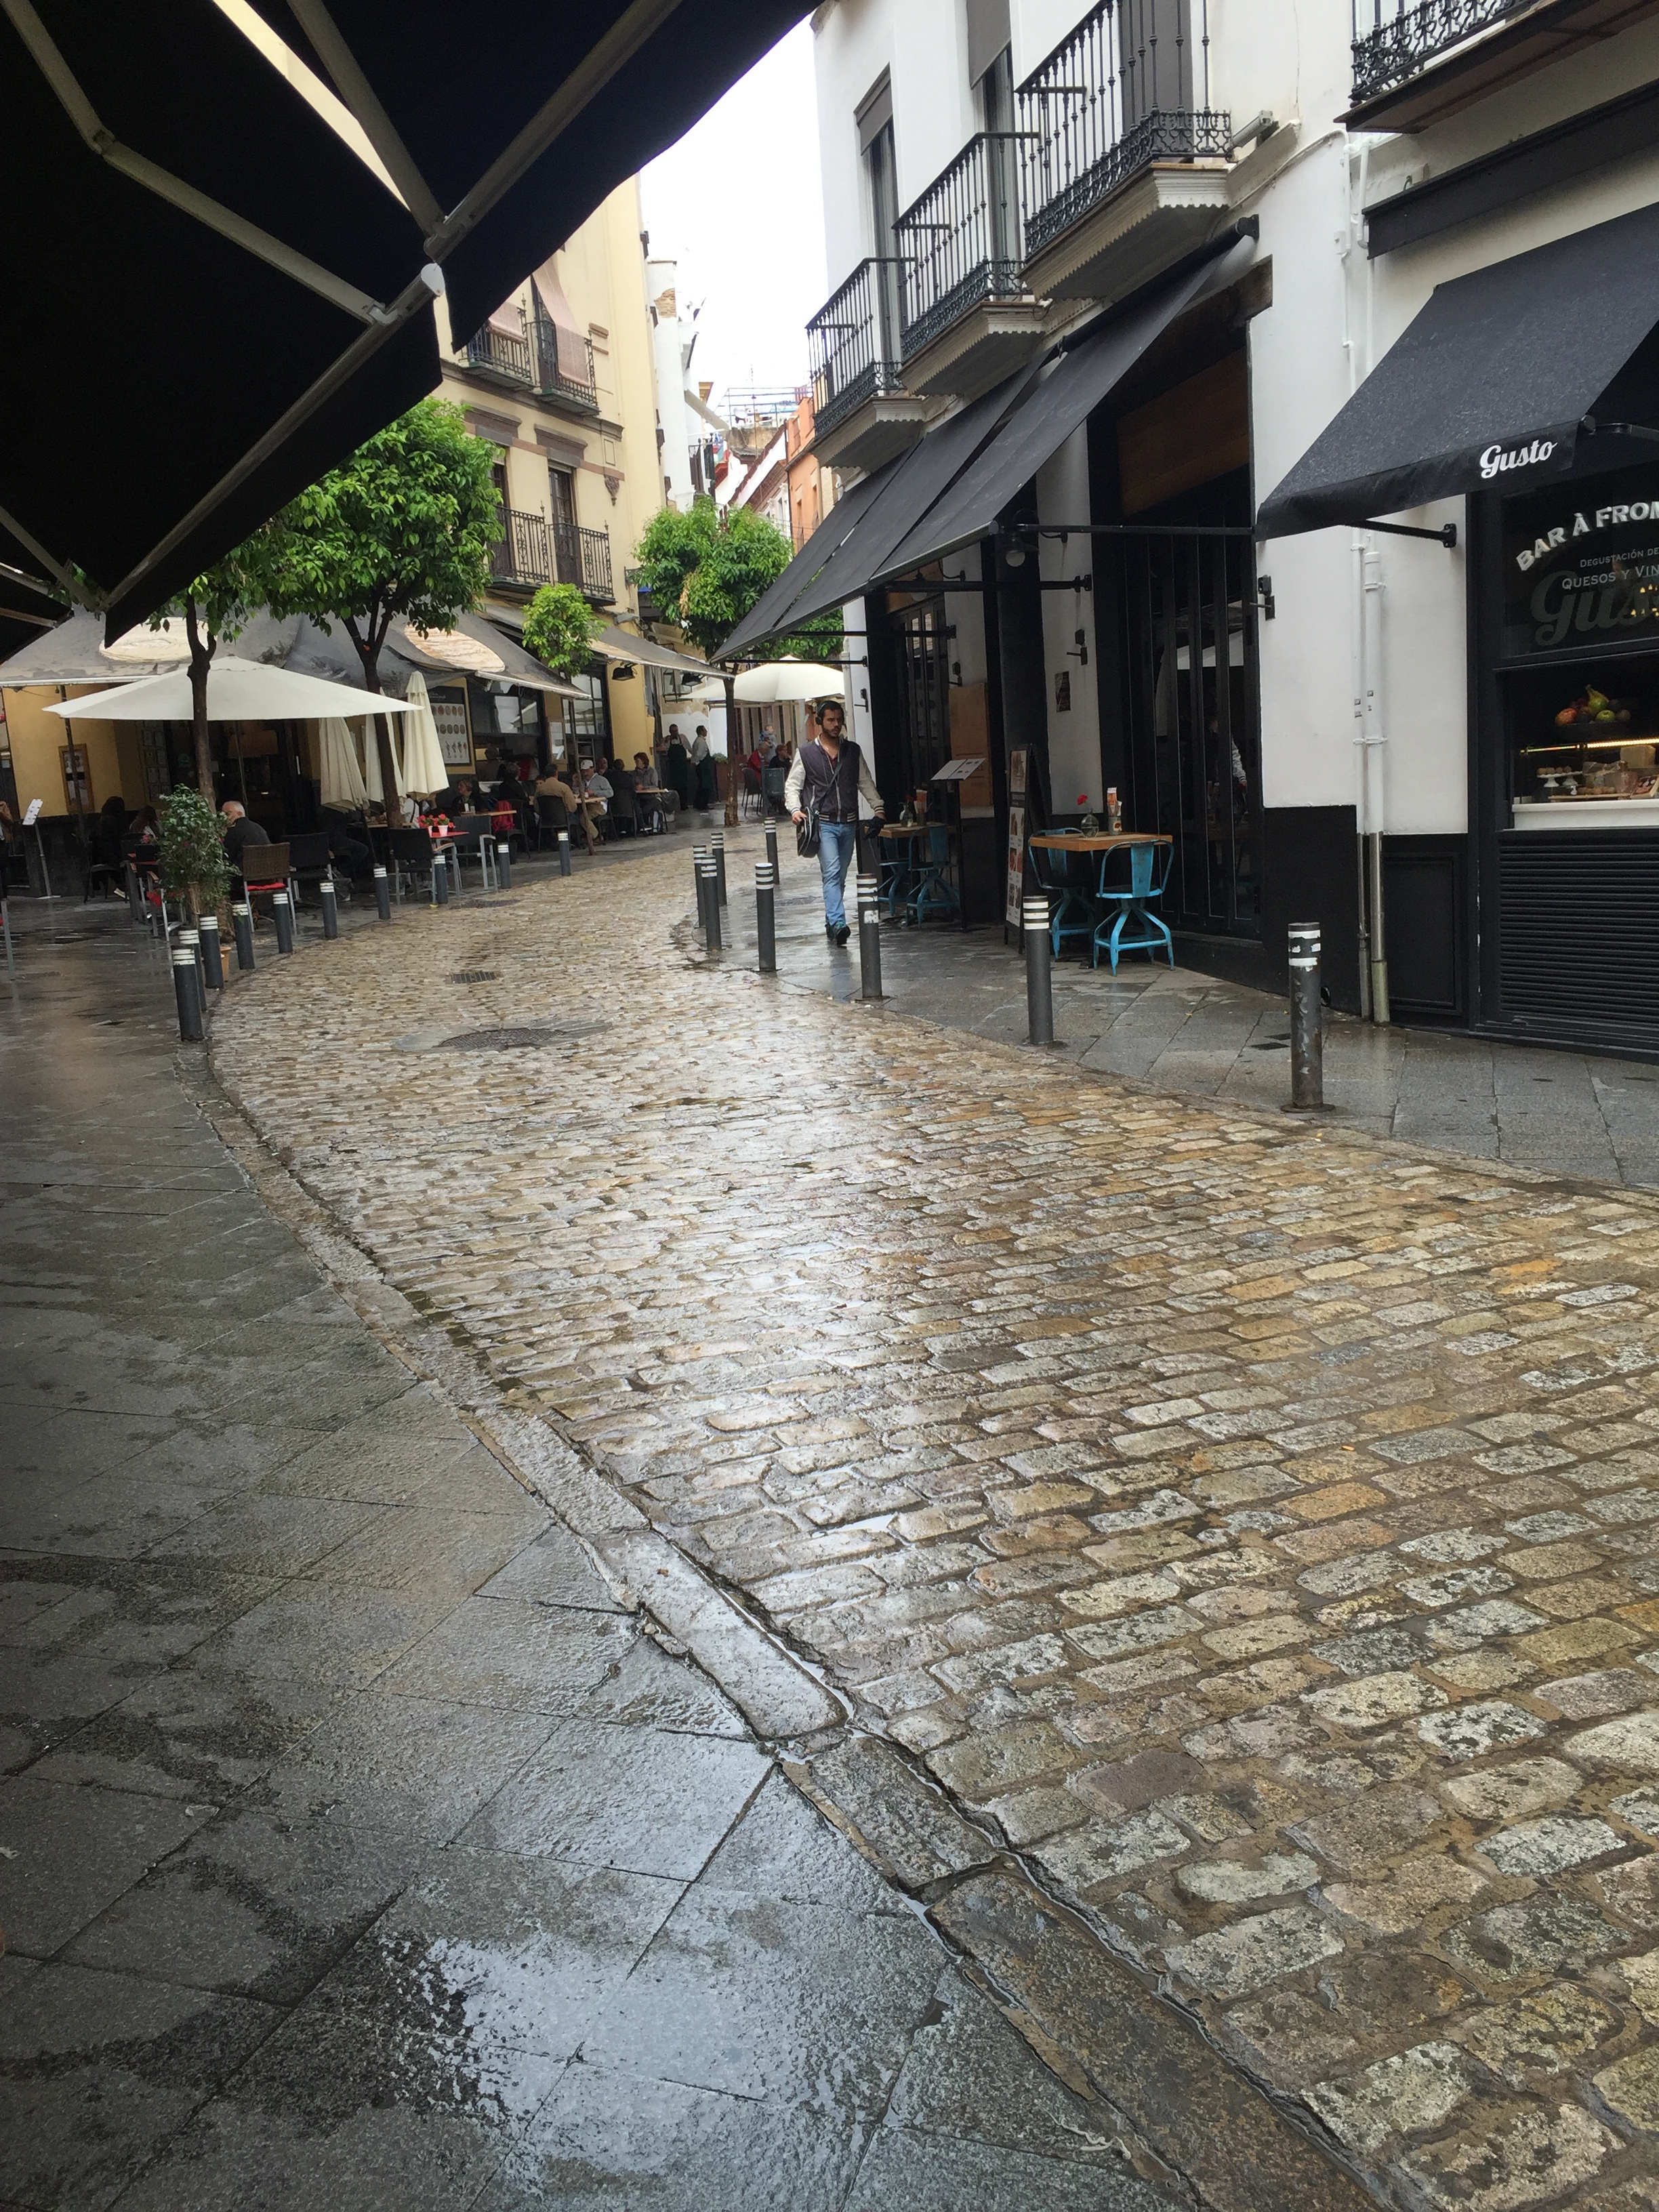 Surrounded by great tapas restaurants and bars